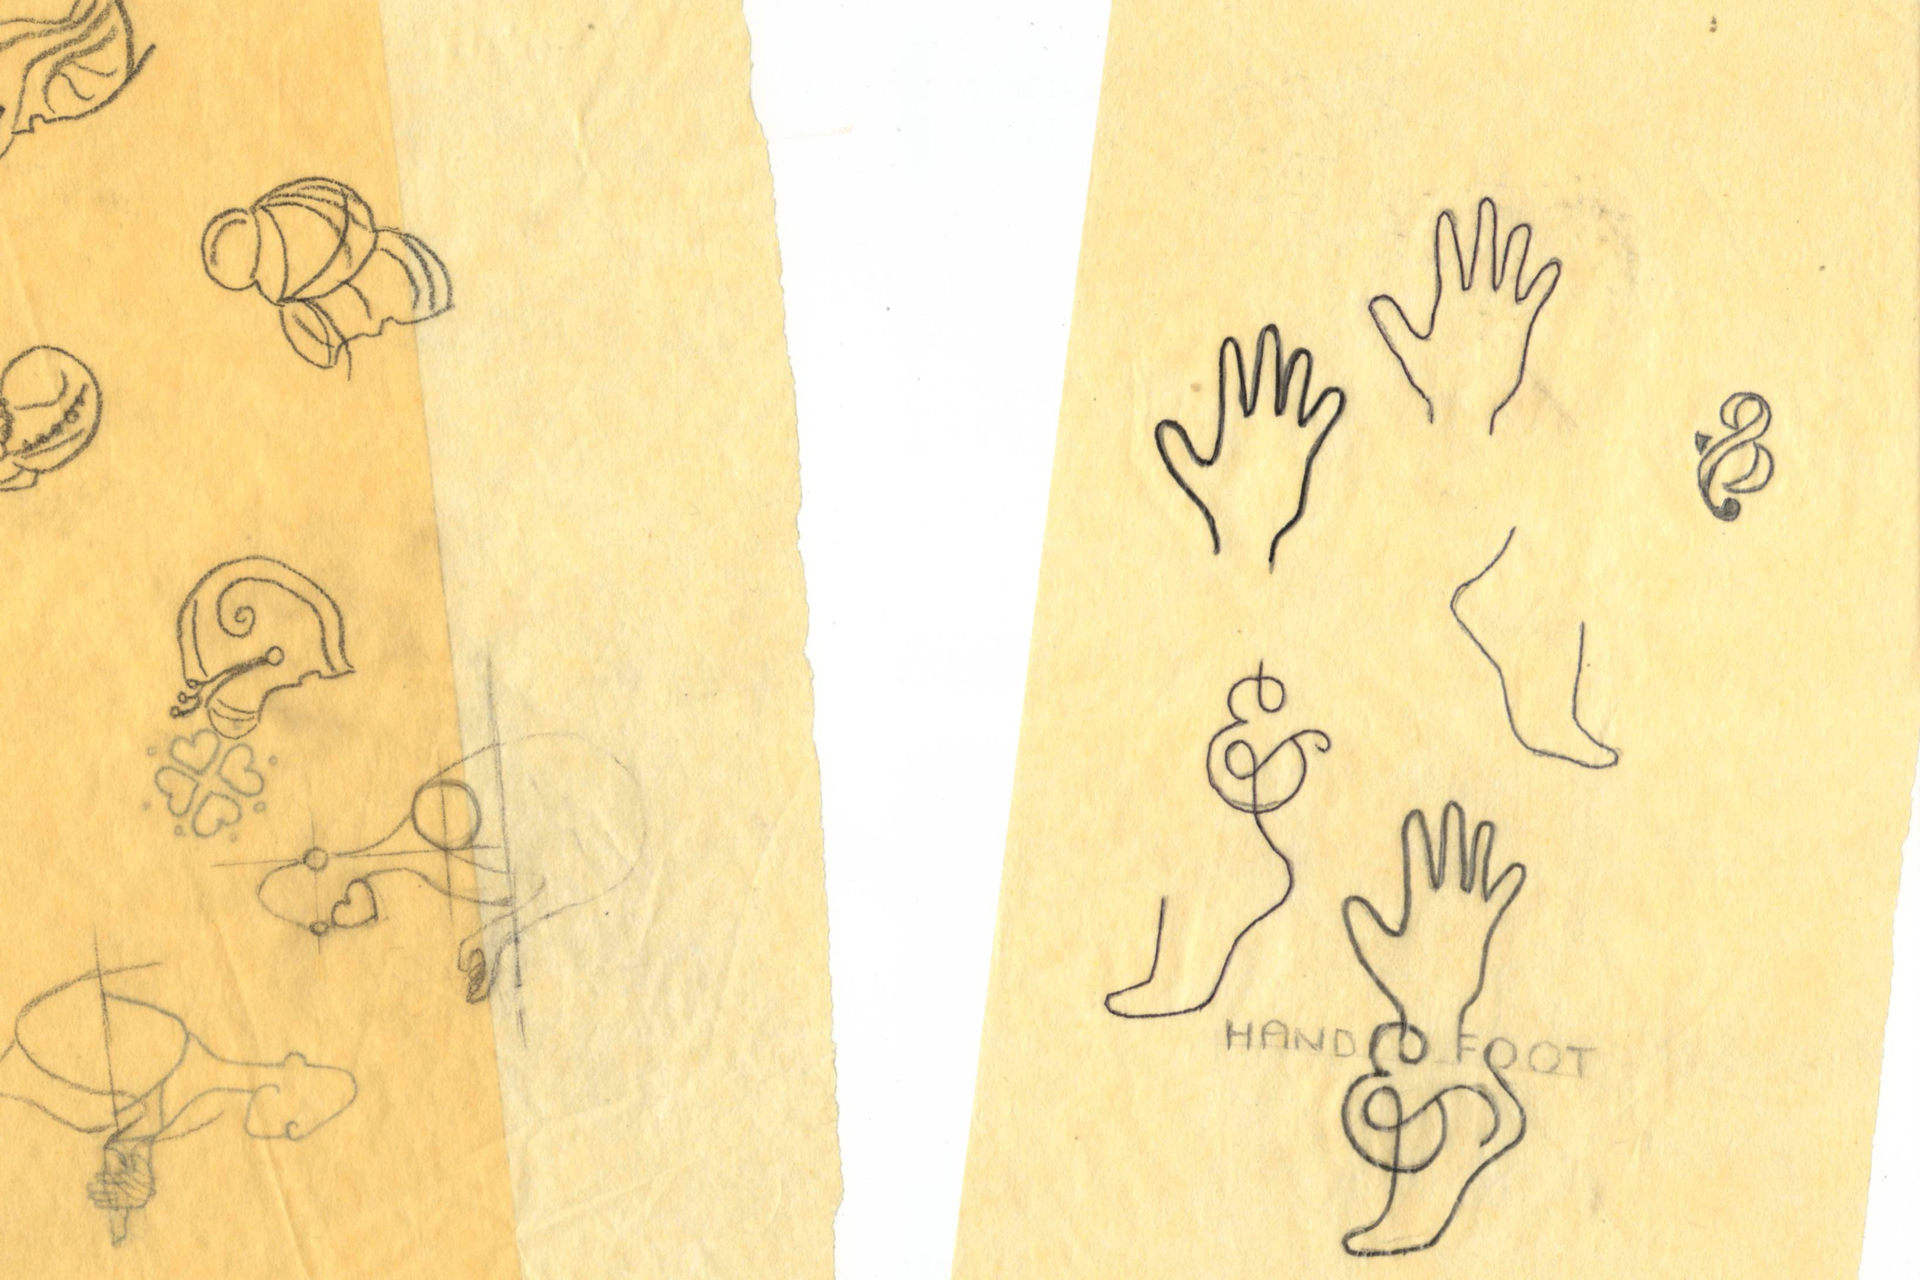 Yellow tracing paper with sketches of hands and feet on them